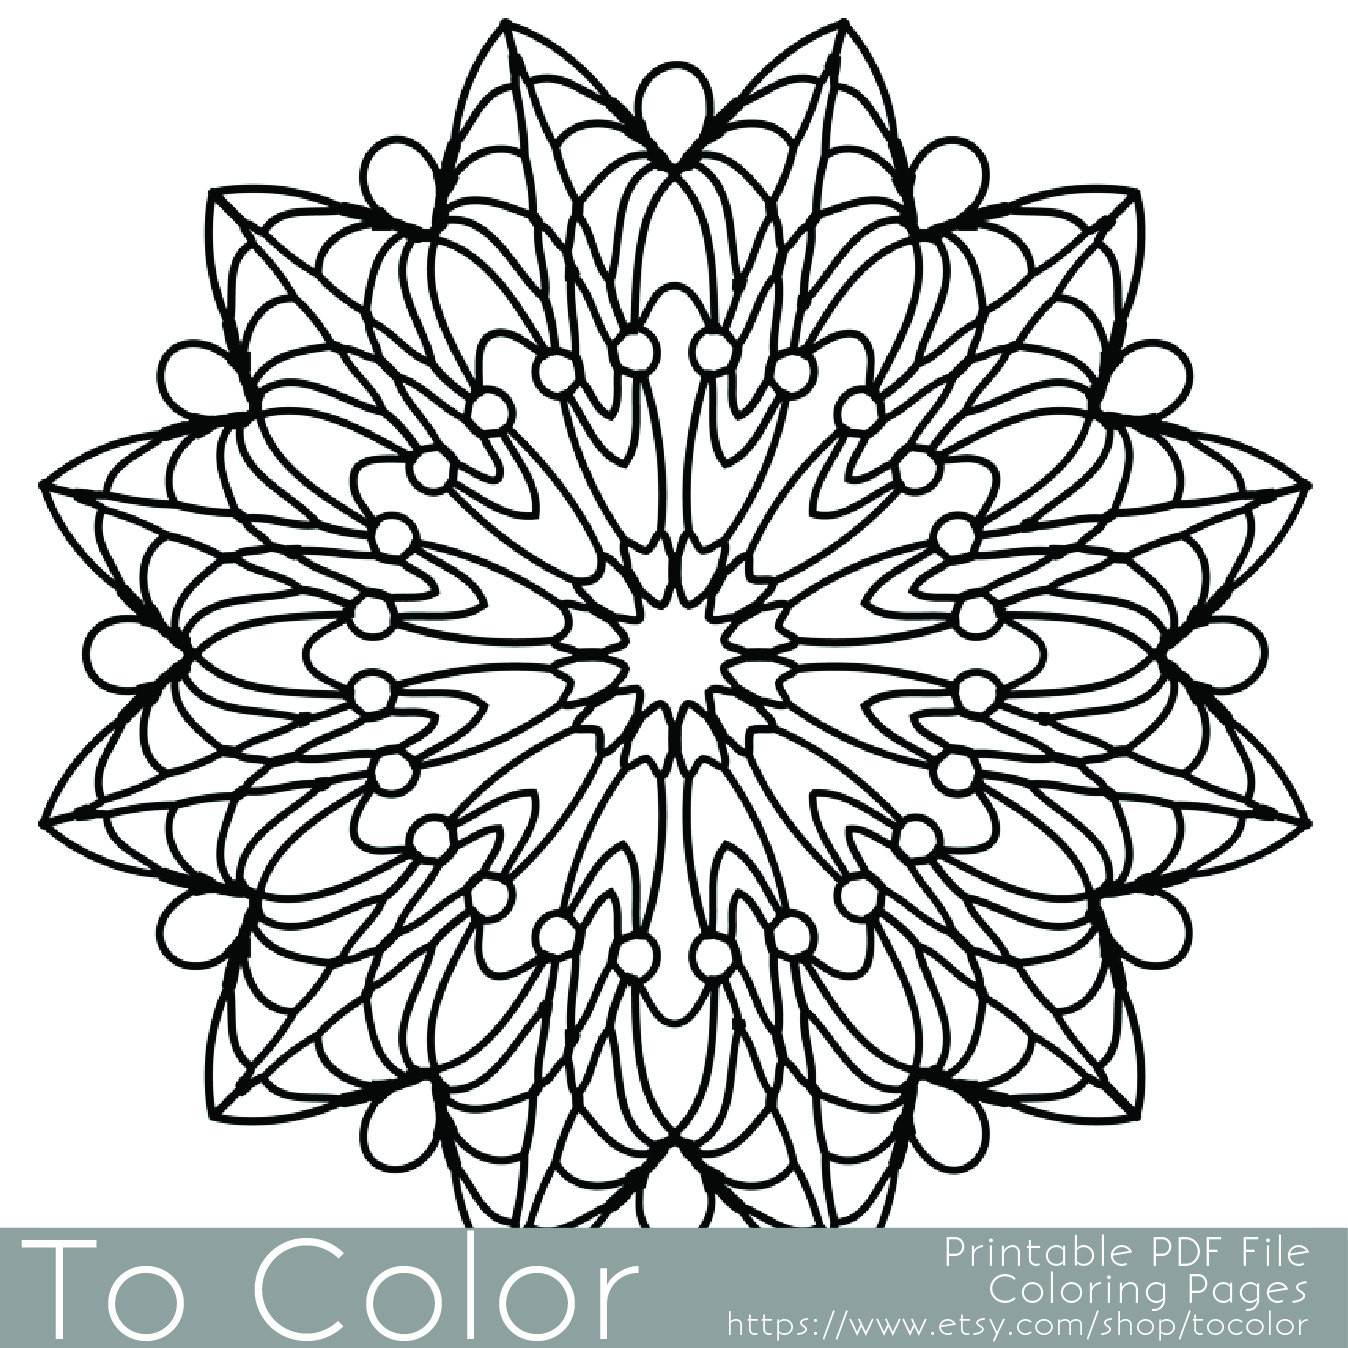 Pens For Adult Coloring Books  Simple Printable Coloring Pages for Adults Gel Pens Mandala